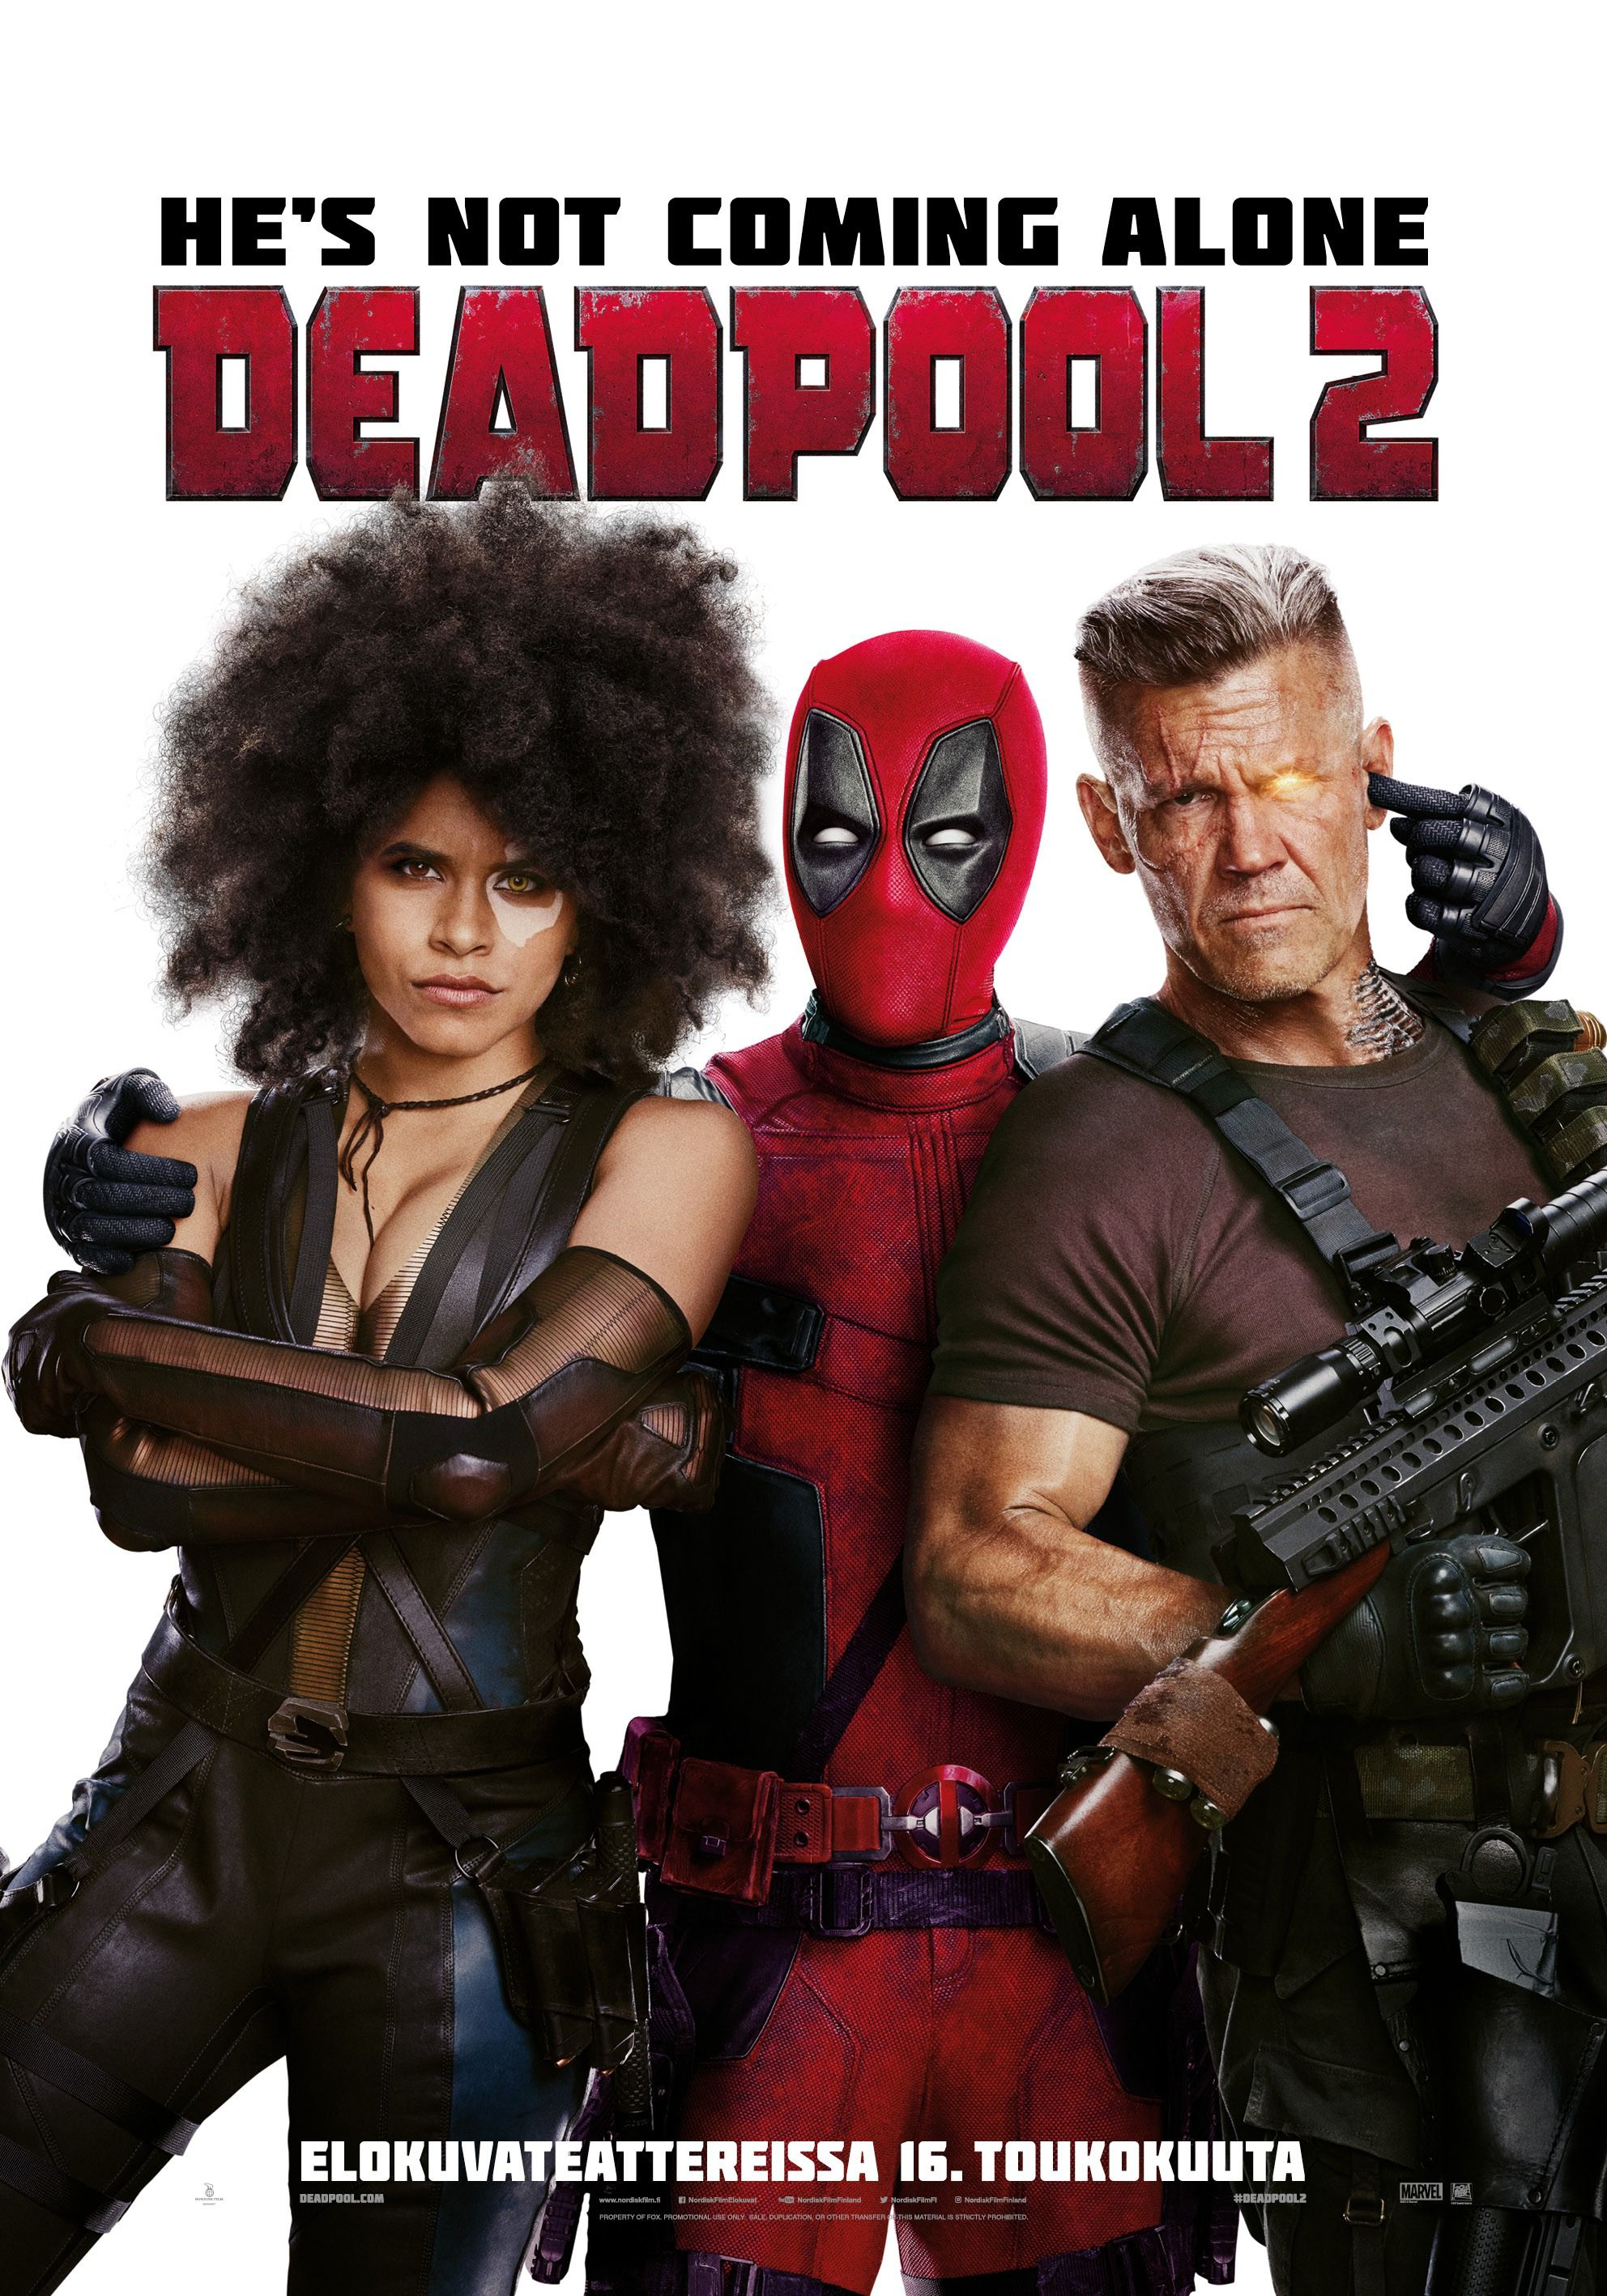 Mega Sized Movie Poster Image for Deadpool 2 (4 of 5